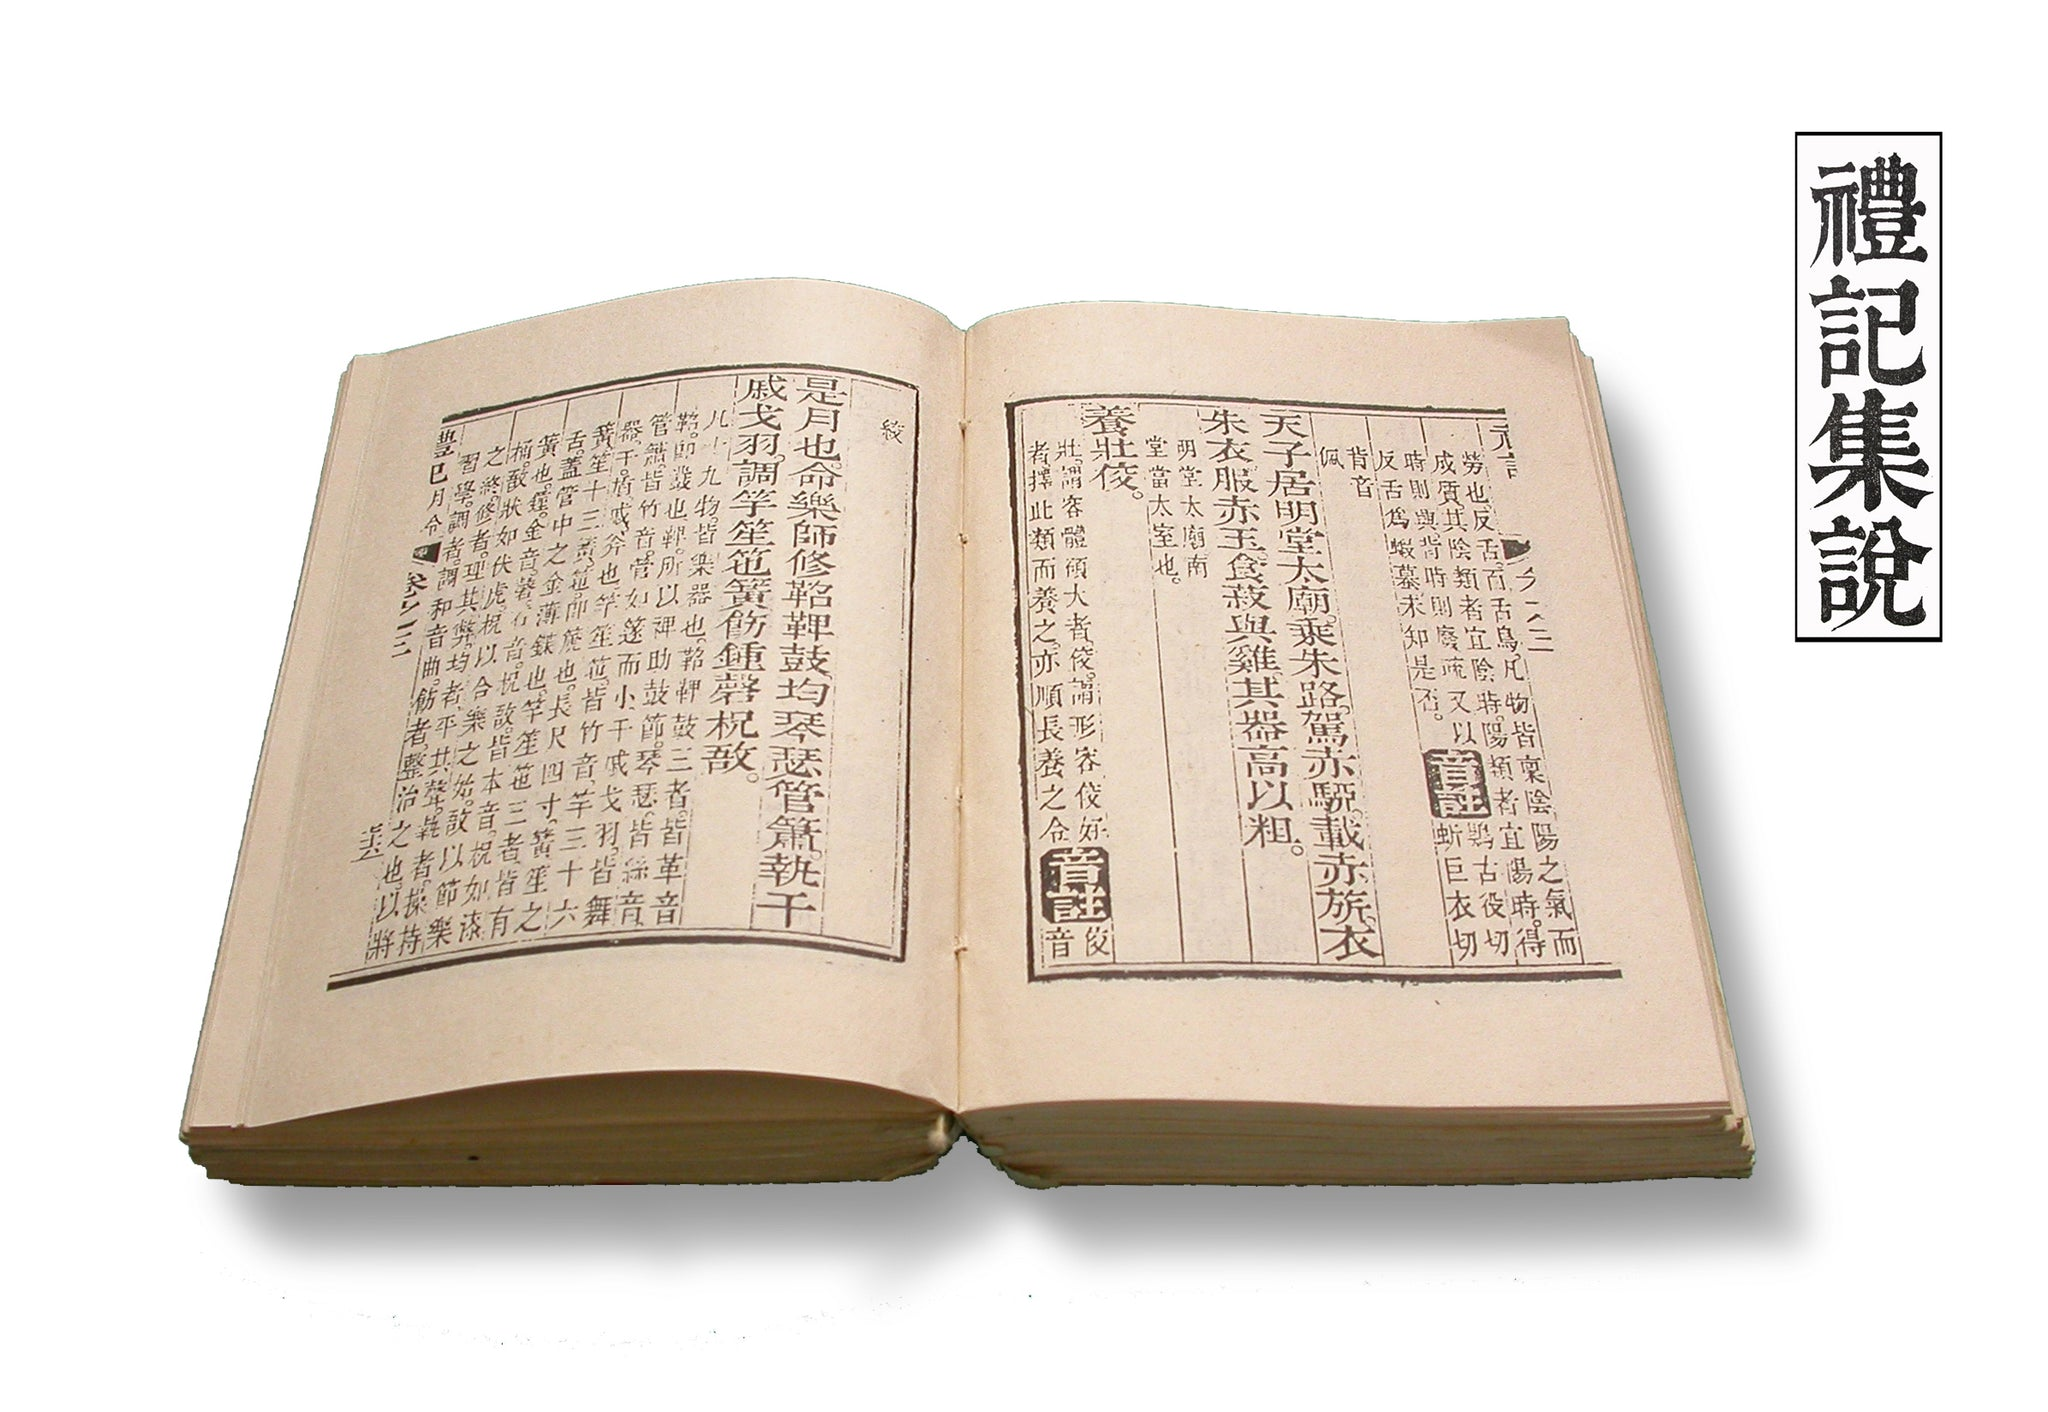 Photo 4 Courtesy: Wiki Commons, The practice of Shuāi Jiāo in the Zhōu Dynasty was recorded in the Classic of Rites.